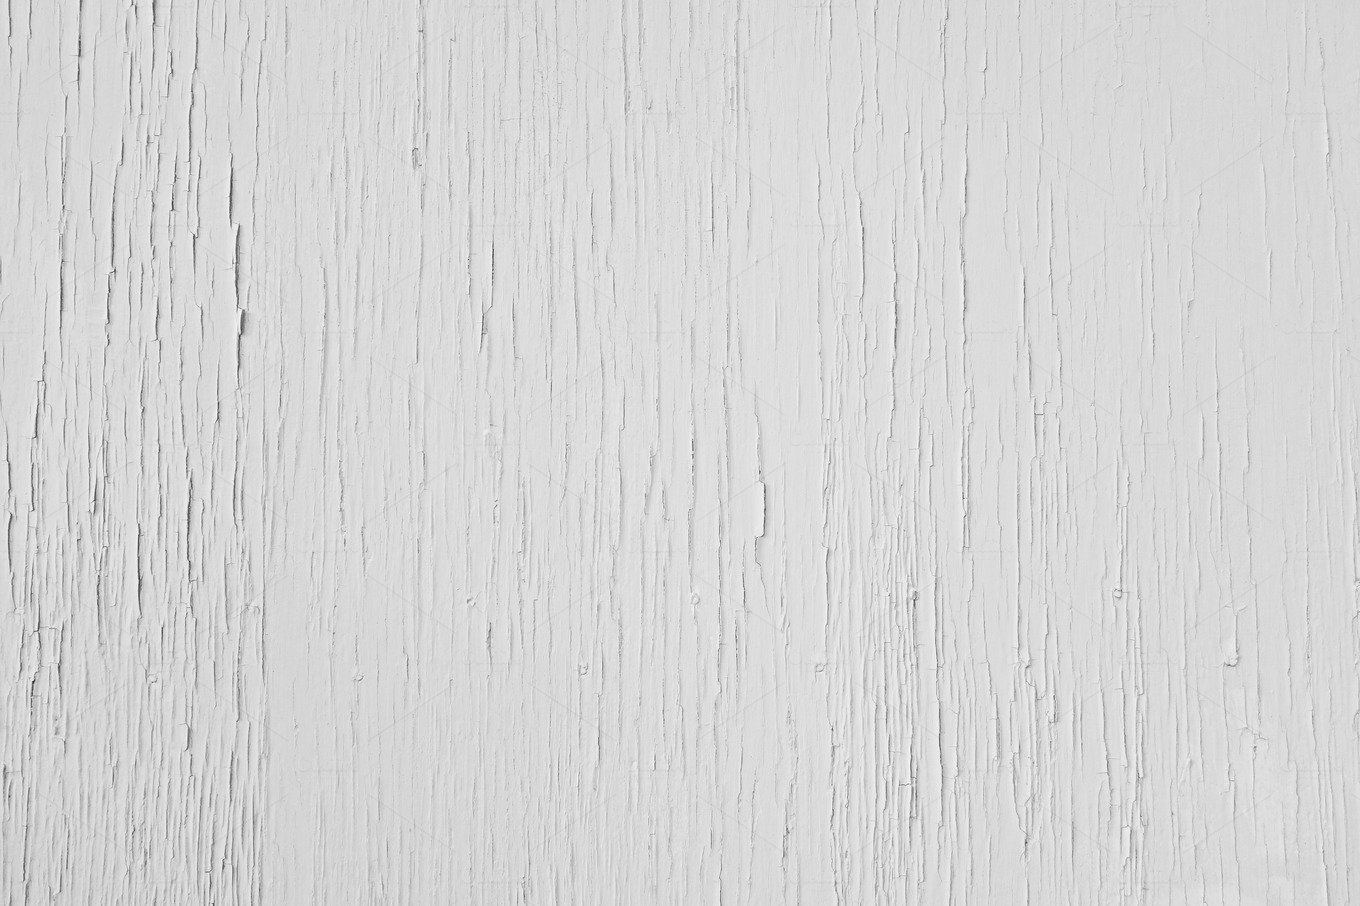 Cracked White Paint ~ Industrial Photos ~ Creative Market